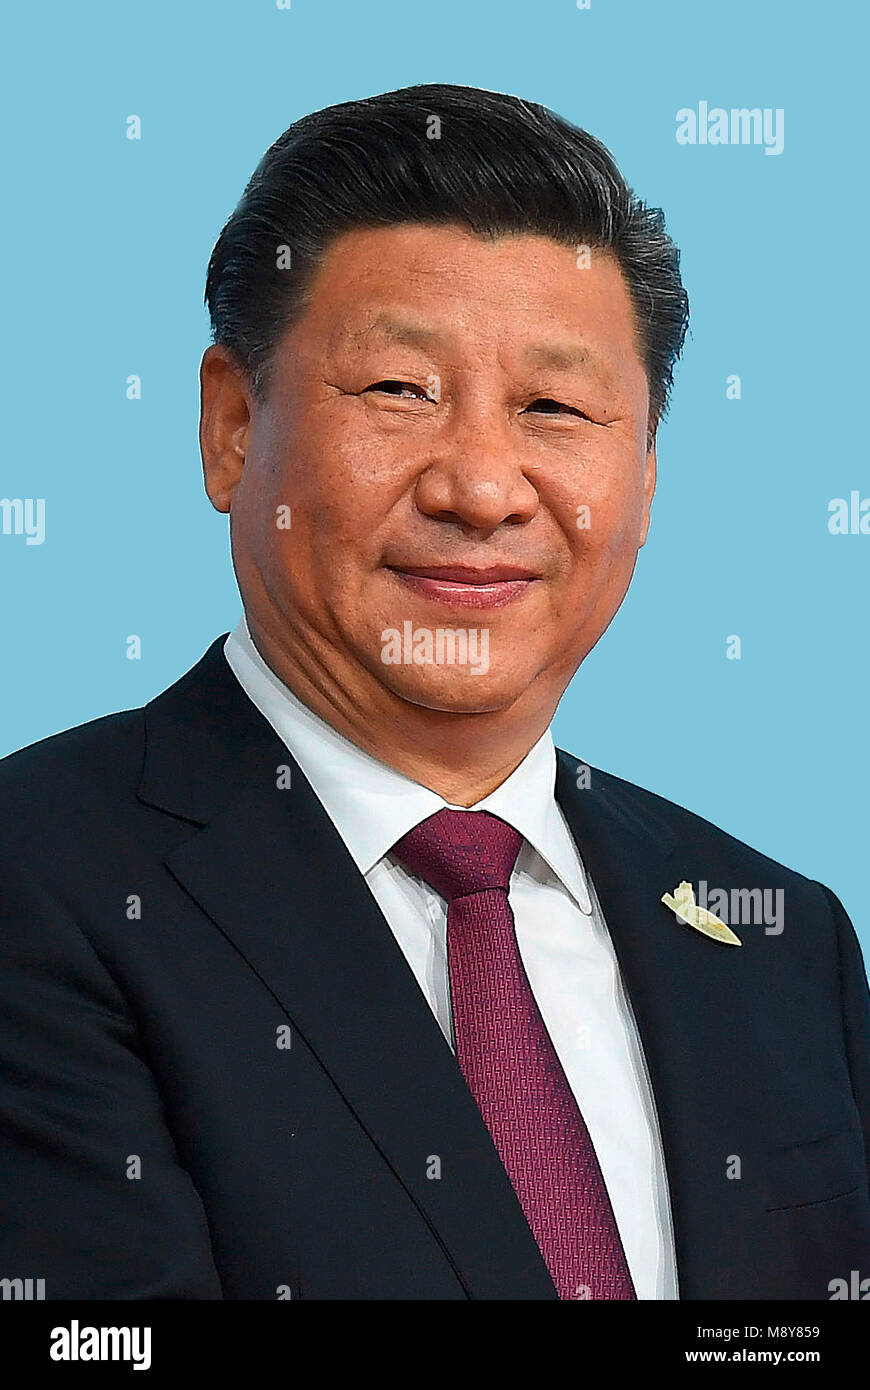 Xi Jinping - *15.06.1953 - 7th President of the People's Republic of China and General Secretary of the Communist - Stock Image